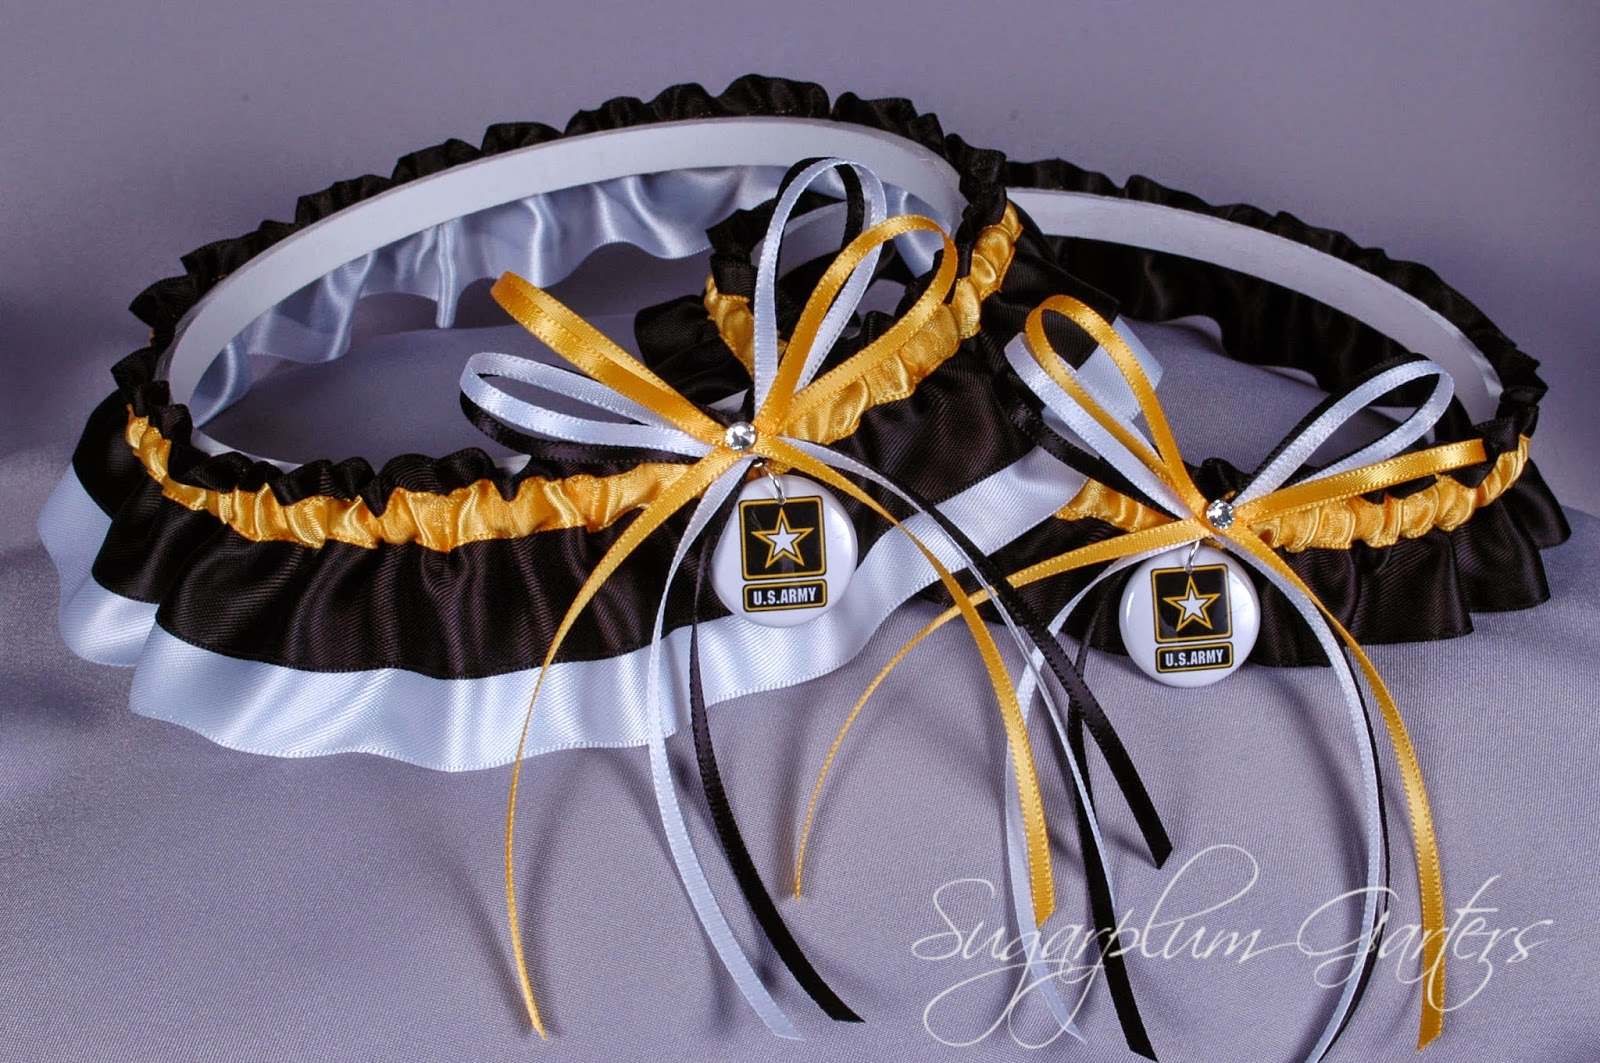 United States Army Wedding Garter Set by Sugarplum Garters